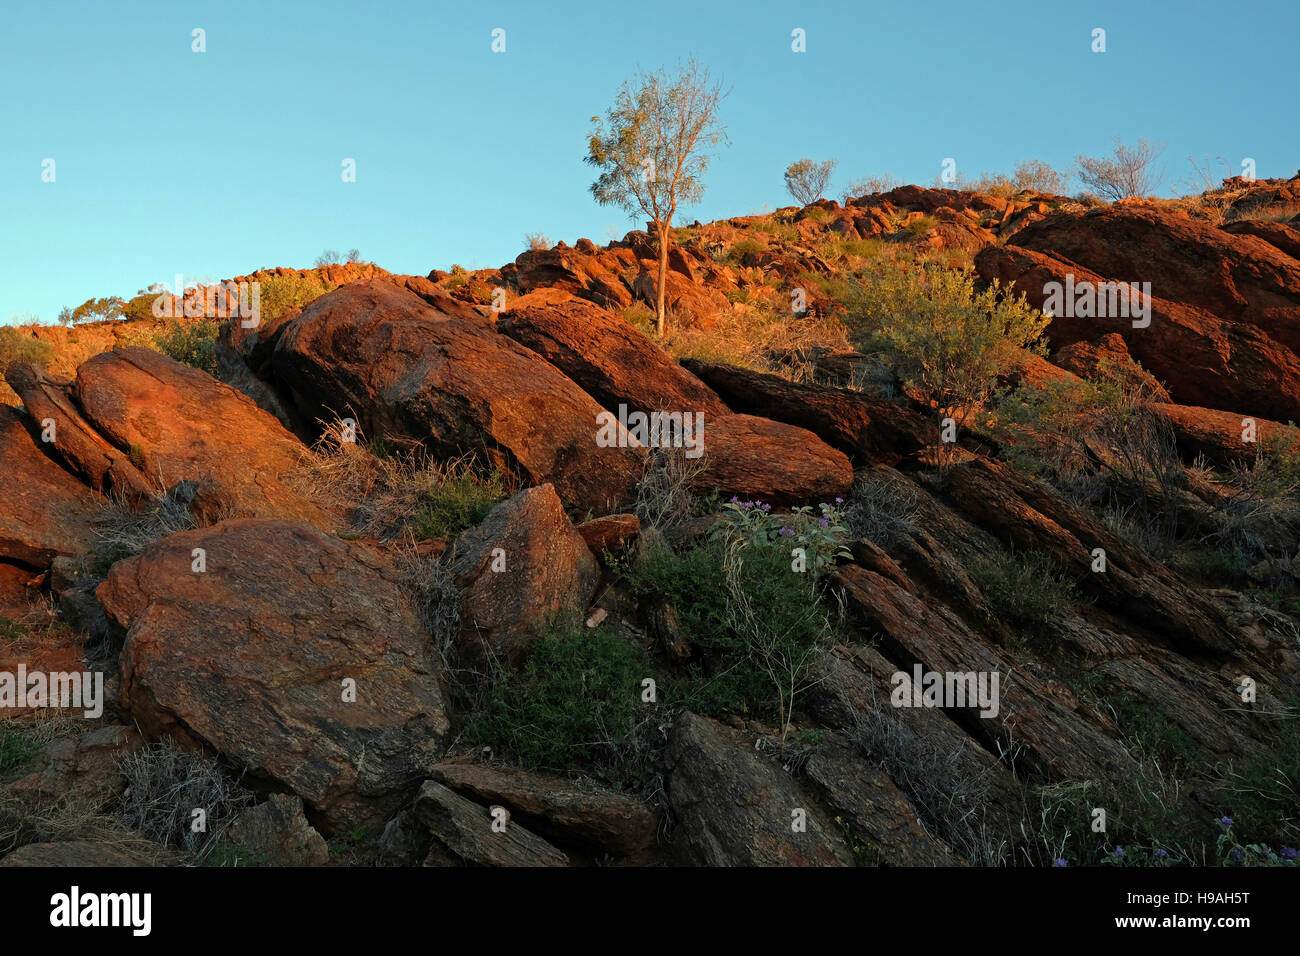 Rocks and flowers on the hillside of the Olive Pink Botanic Garden, Alice Springs, Northern Territory, Australia - Stock Image